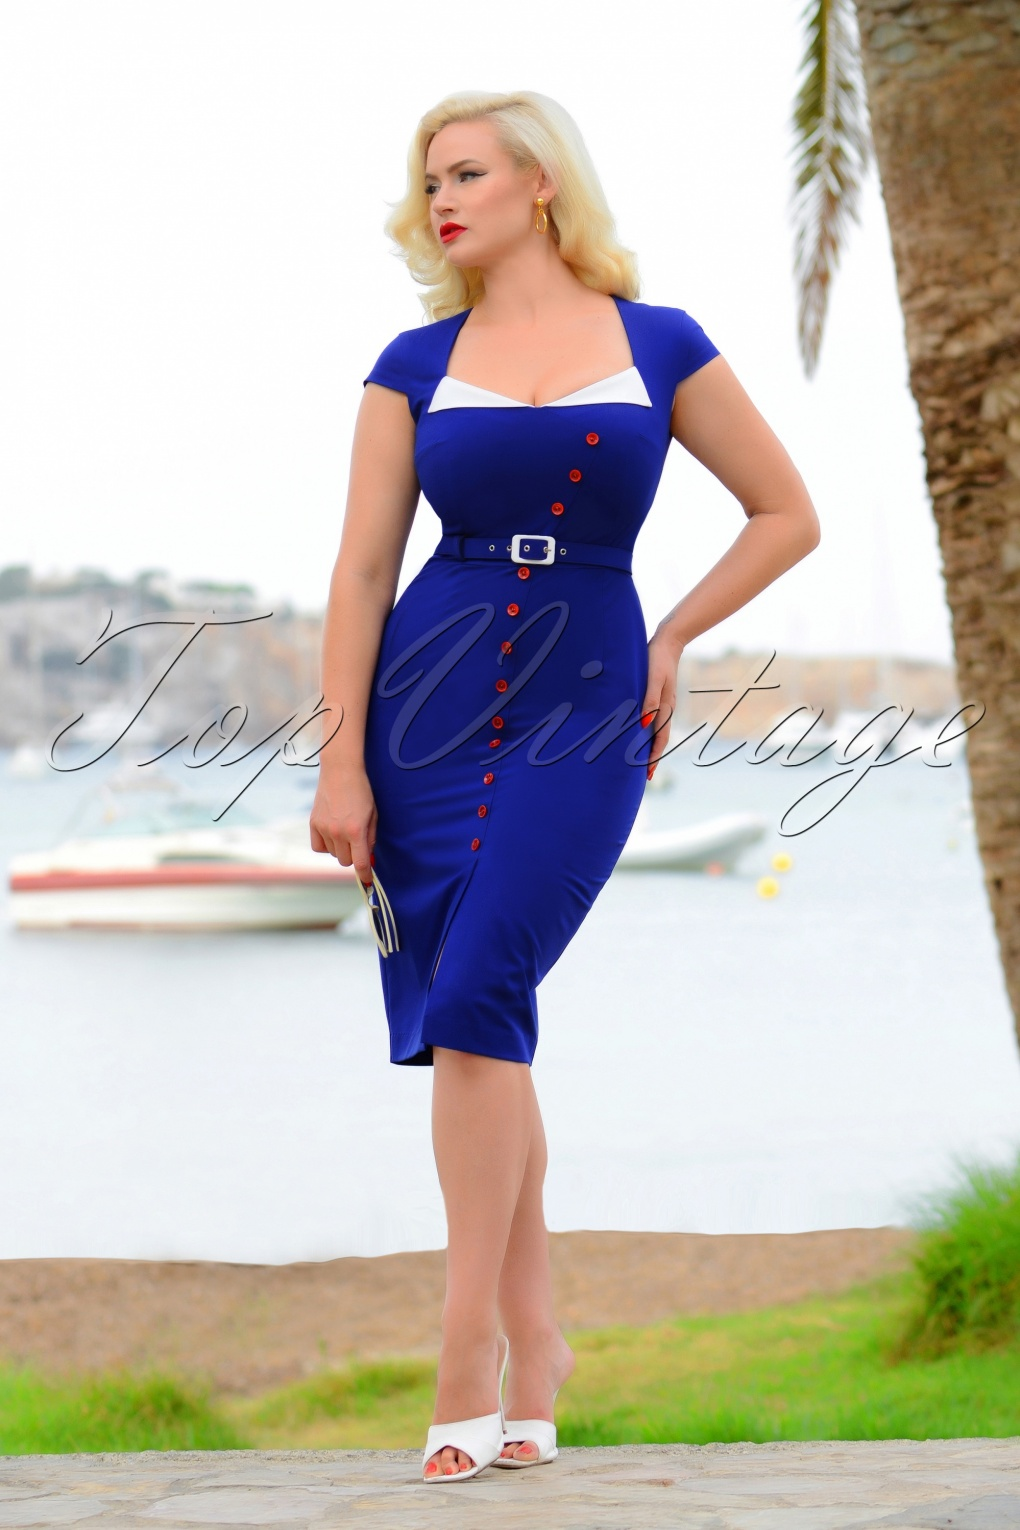 Vintage Sailor Clothes, Nautical Theme Clothing 50s Valerie Pencil Dress in Royal Blue £102.61 AT vintagedancer.com